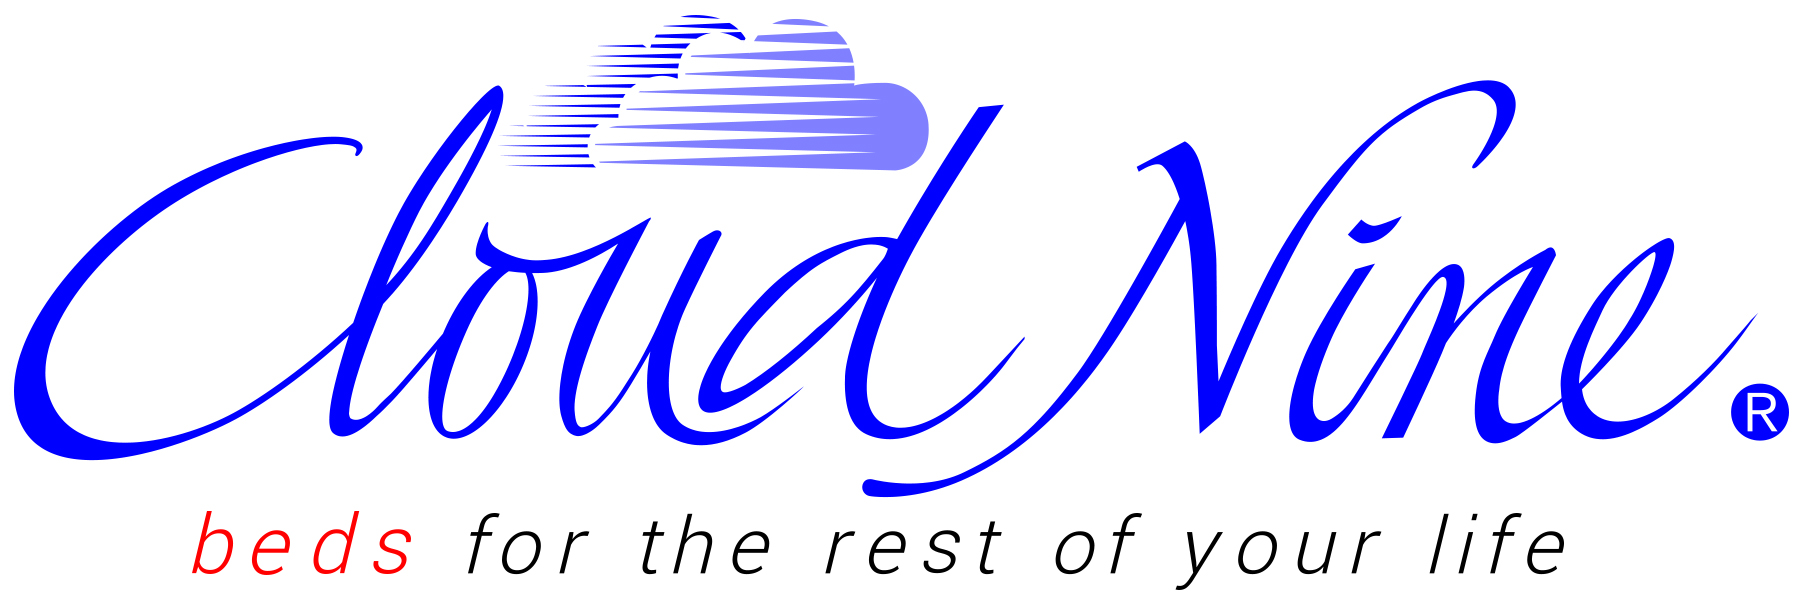 Cloud Nine Logo Original - VECTOR